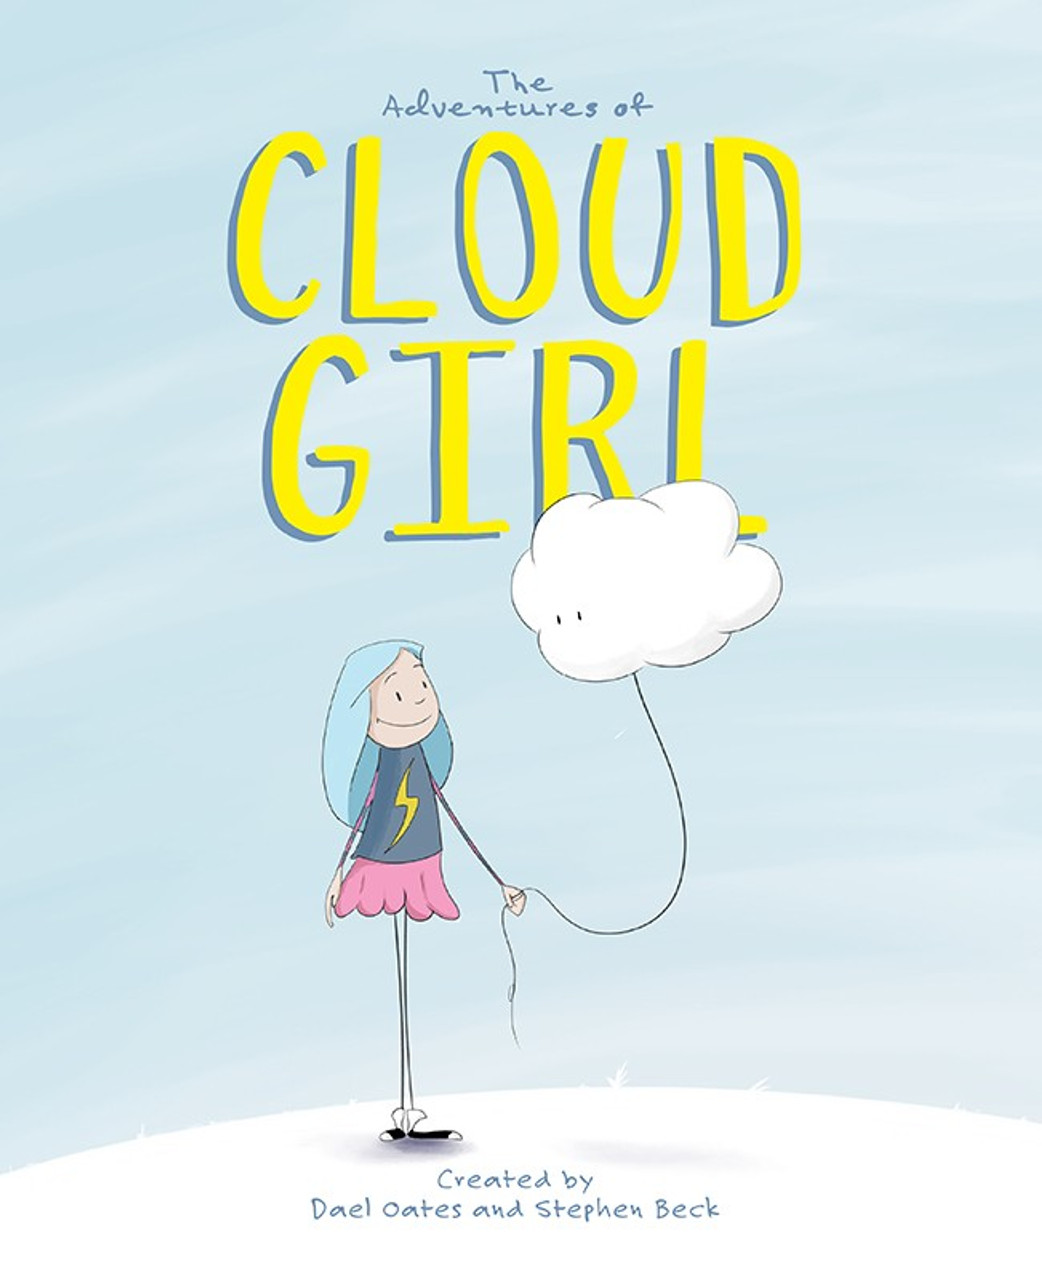 The Adventures of Cloud Girl